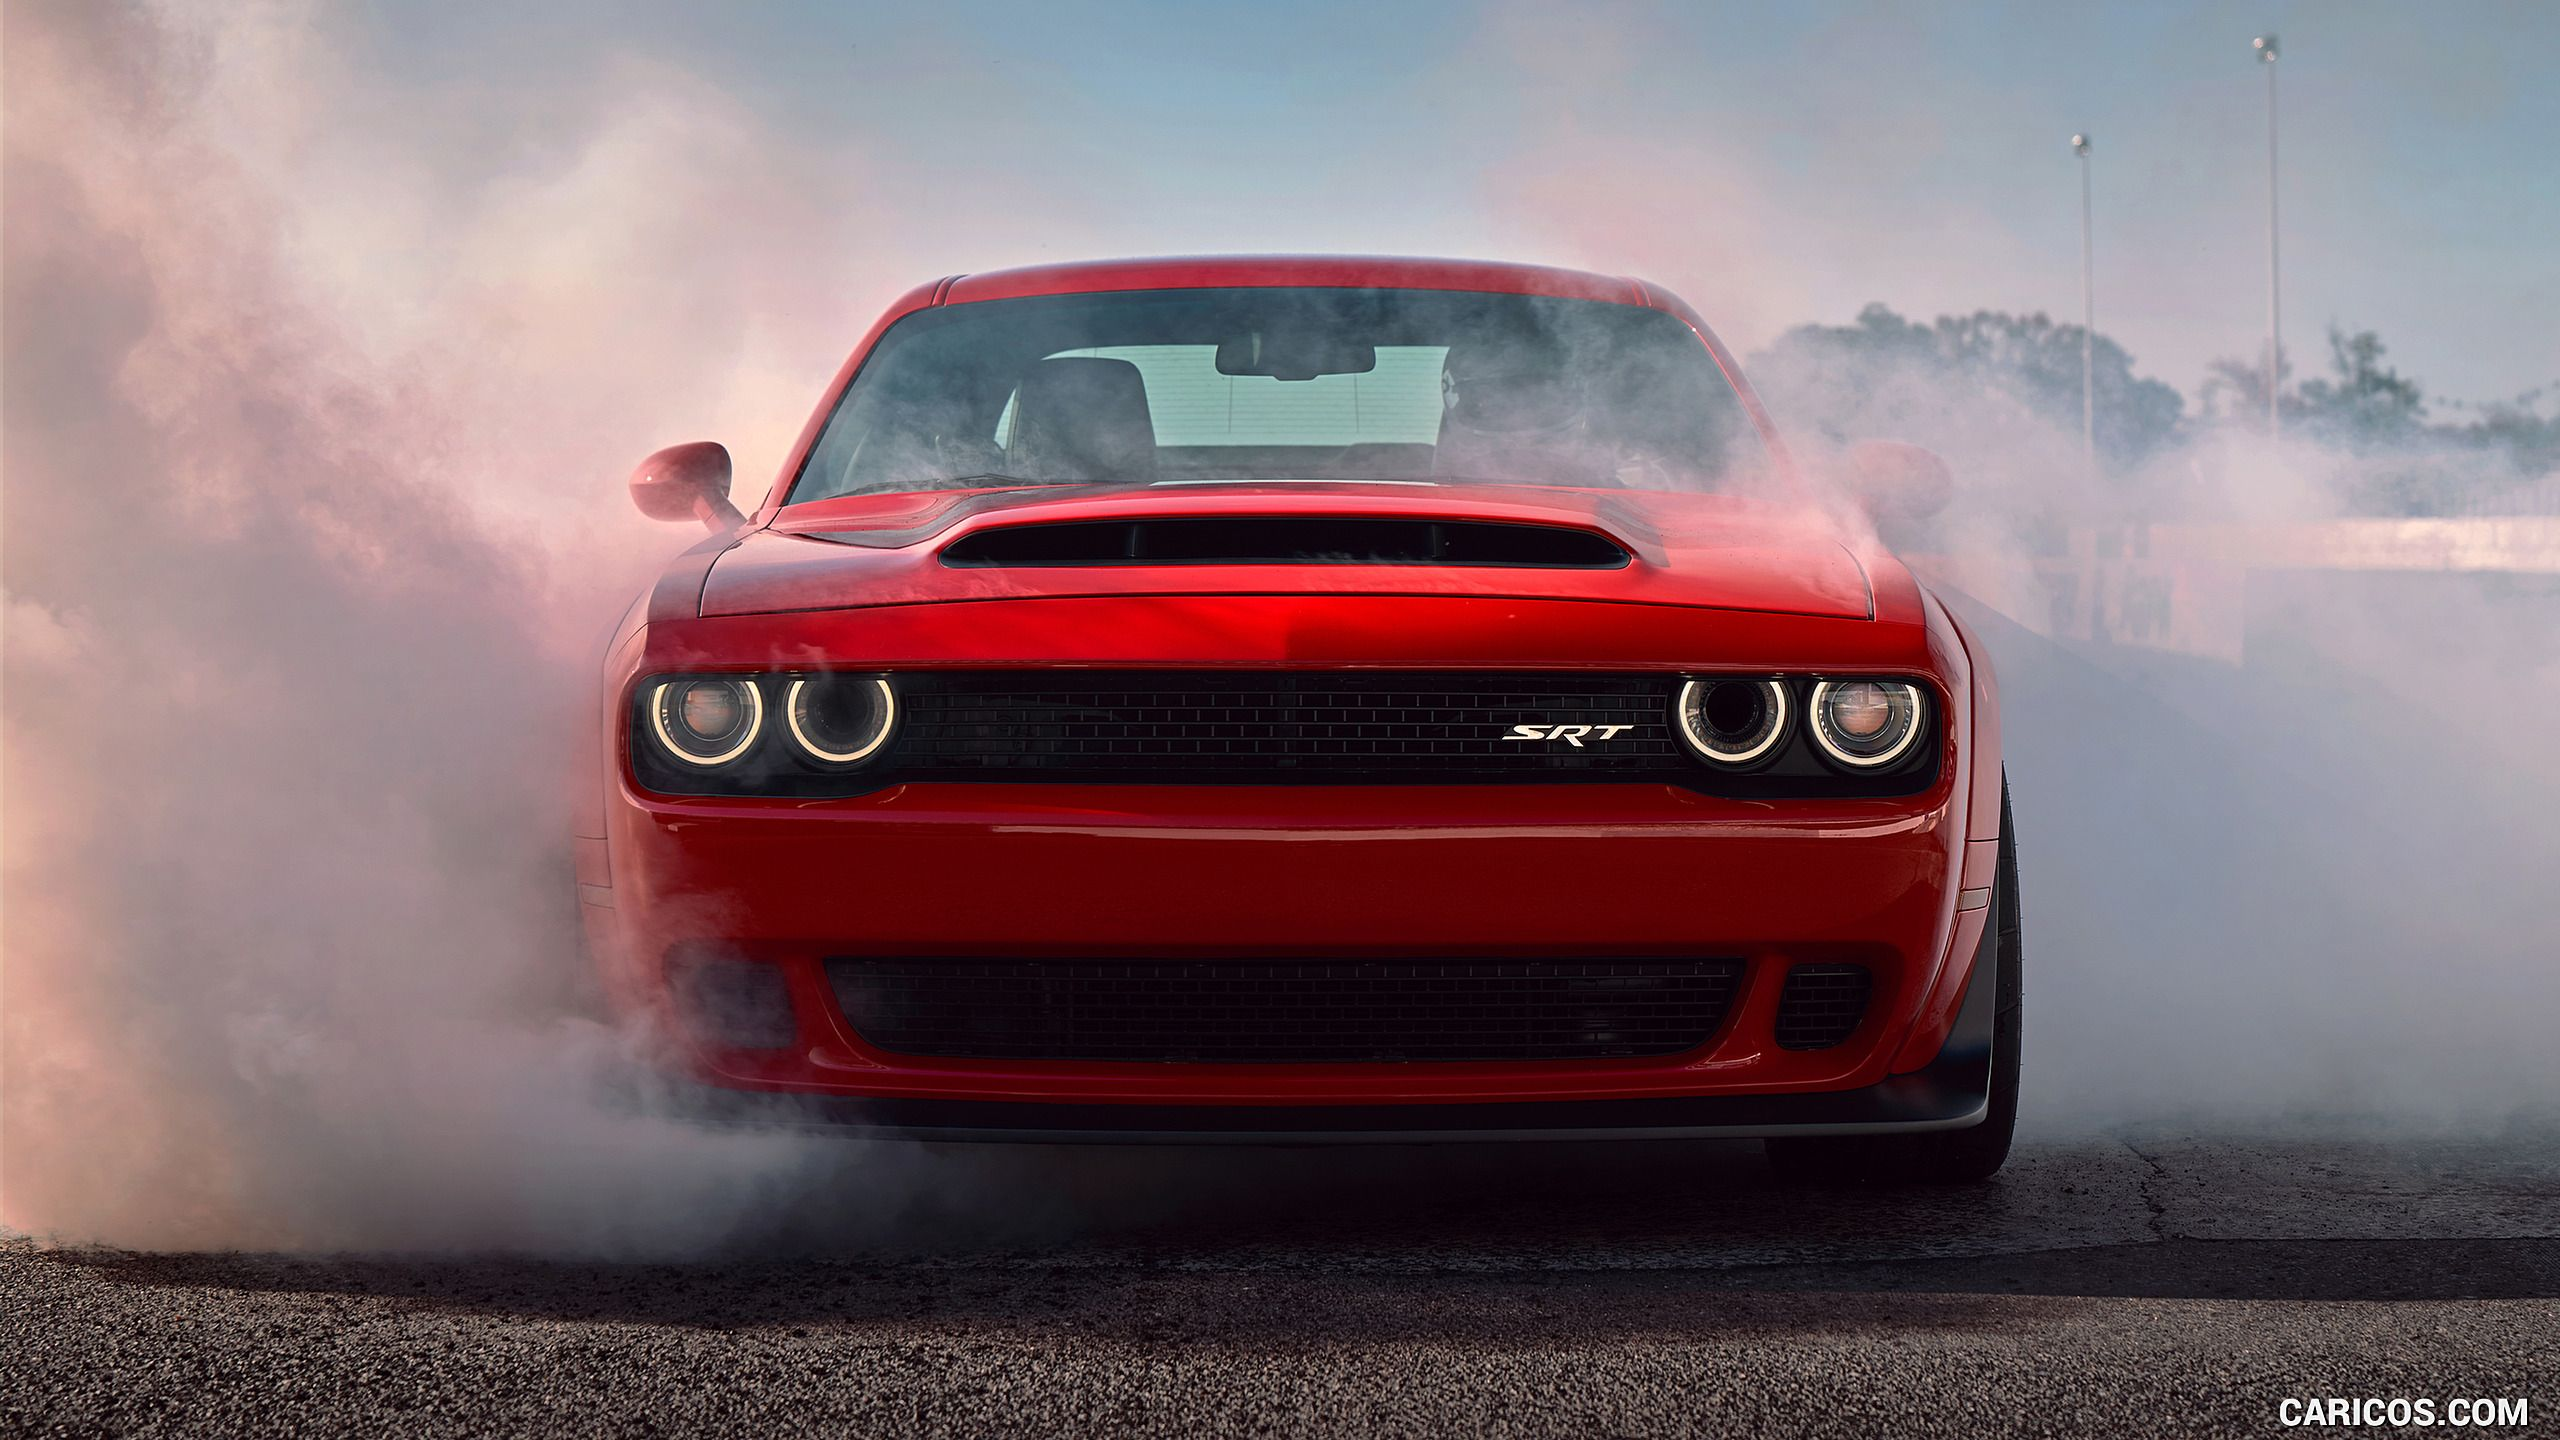 Dodge Challenger Wallpapers Top Free Dodge Challenger